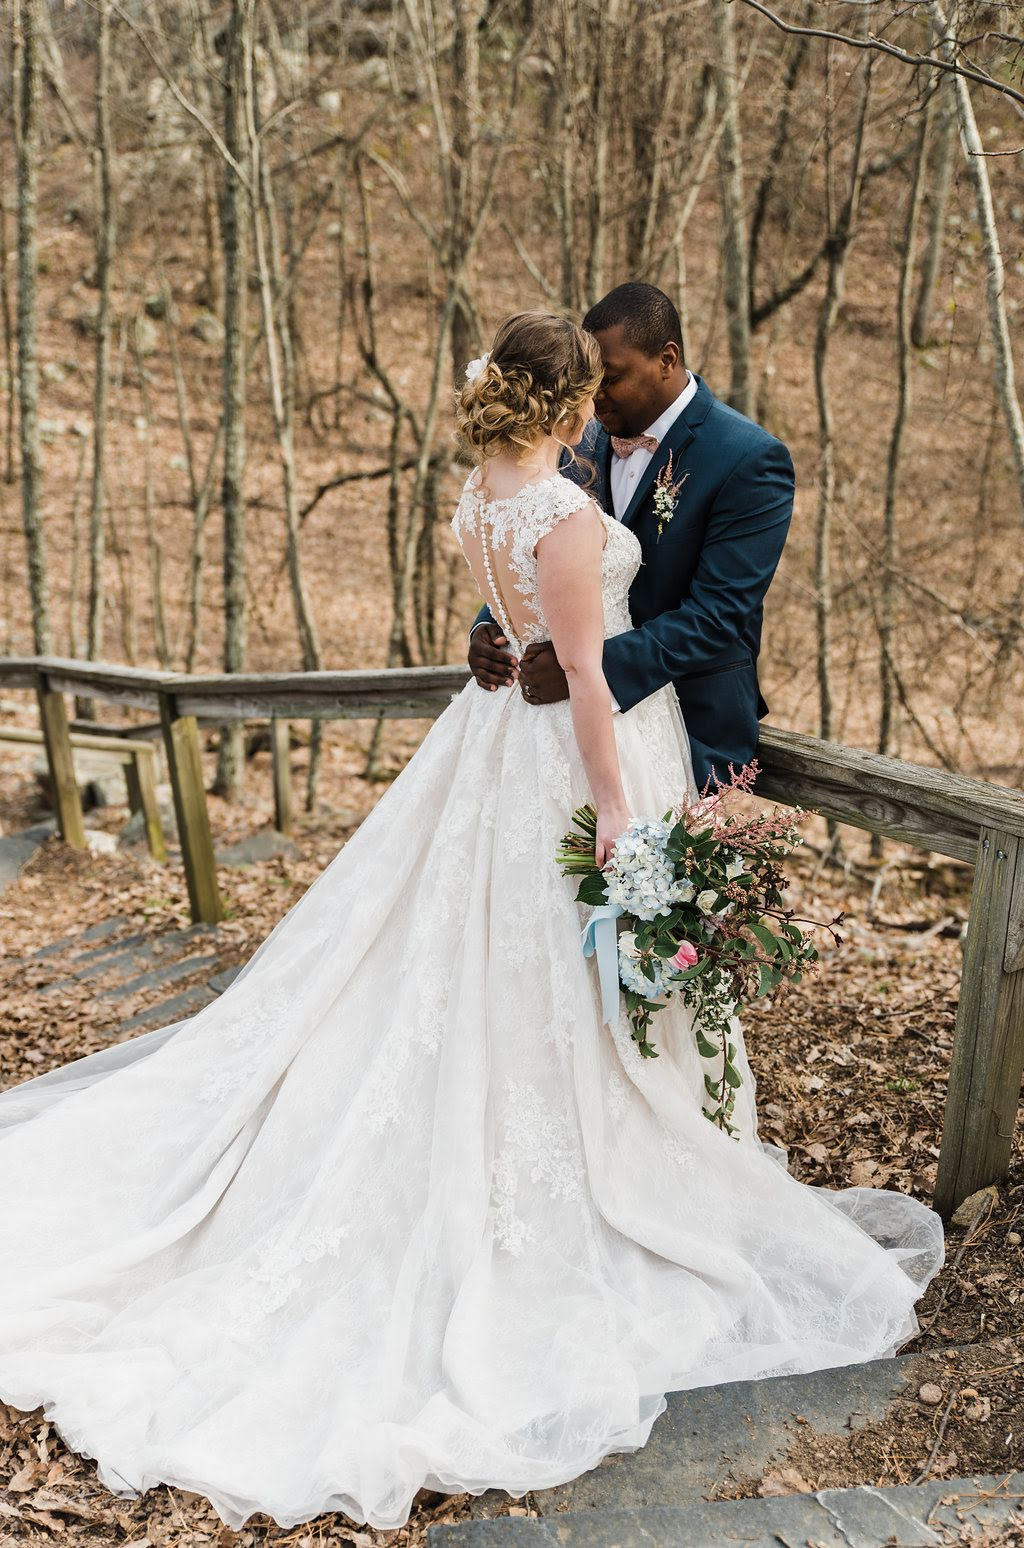 MountainStyledShoot_PearlEvents_70.jpg